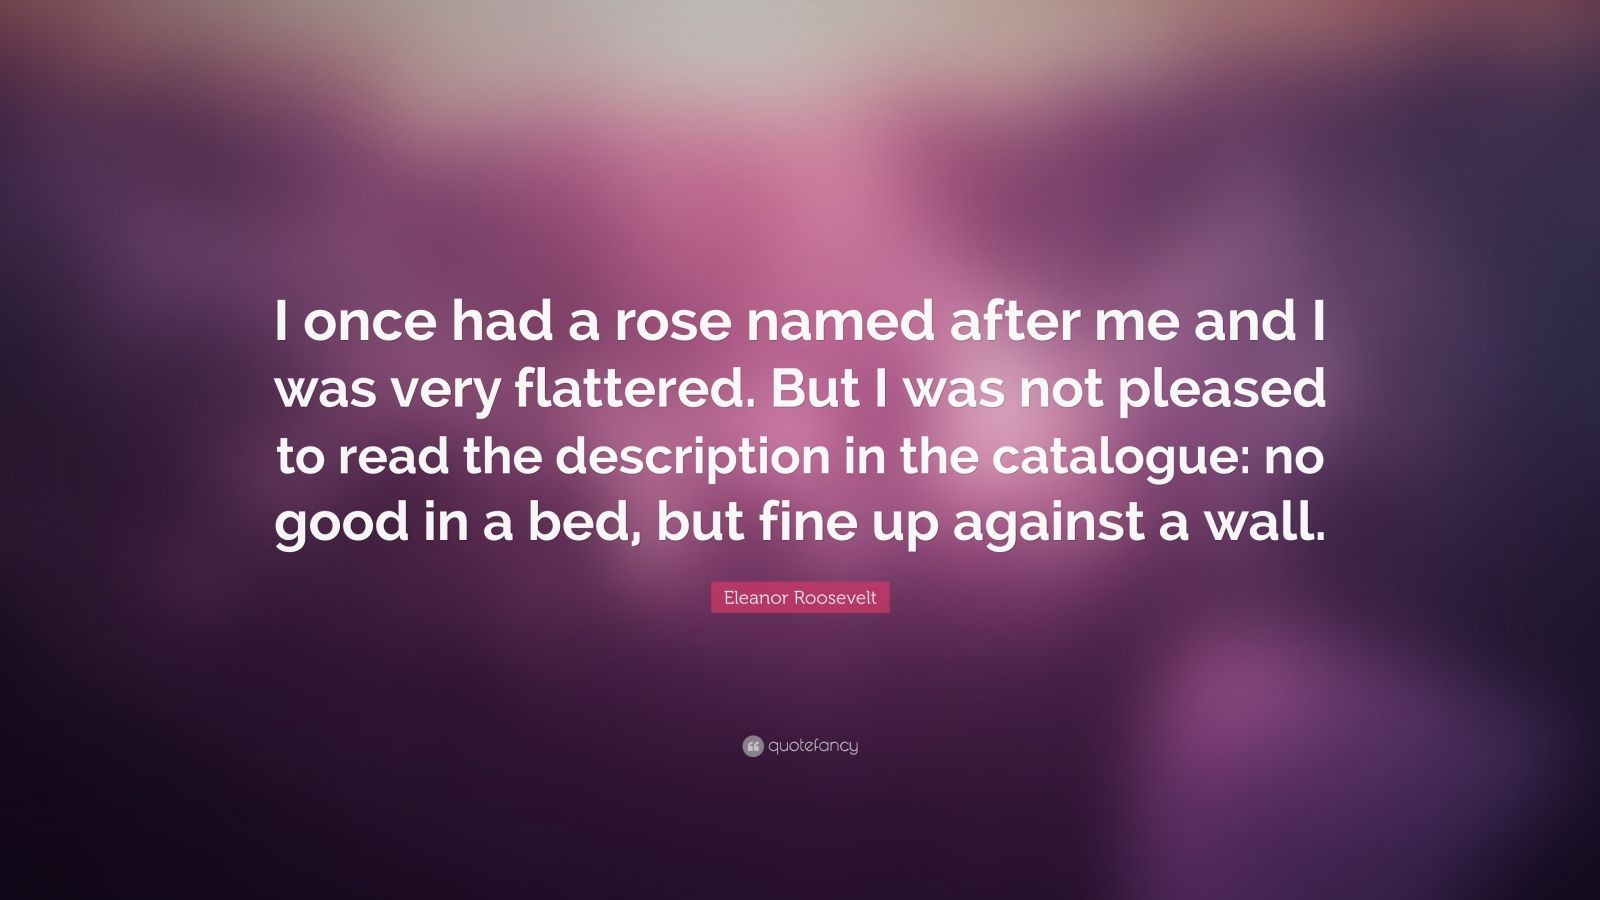 "Eleanor Roosevelt Quote: ""I once had a rose named after me and I was very flattered. But I was not pleased to read the description in the catalogue: no good in a bed, but fine up against a wall."""